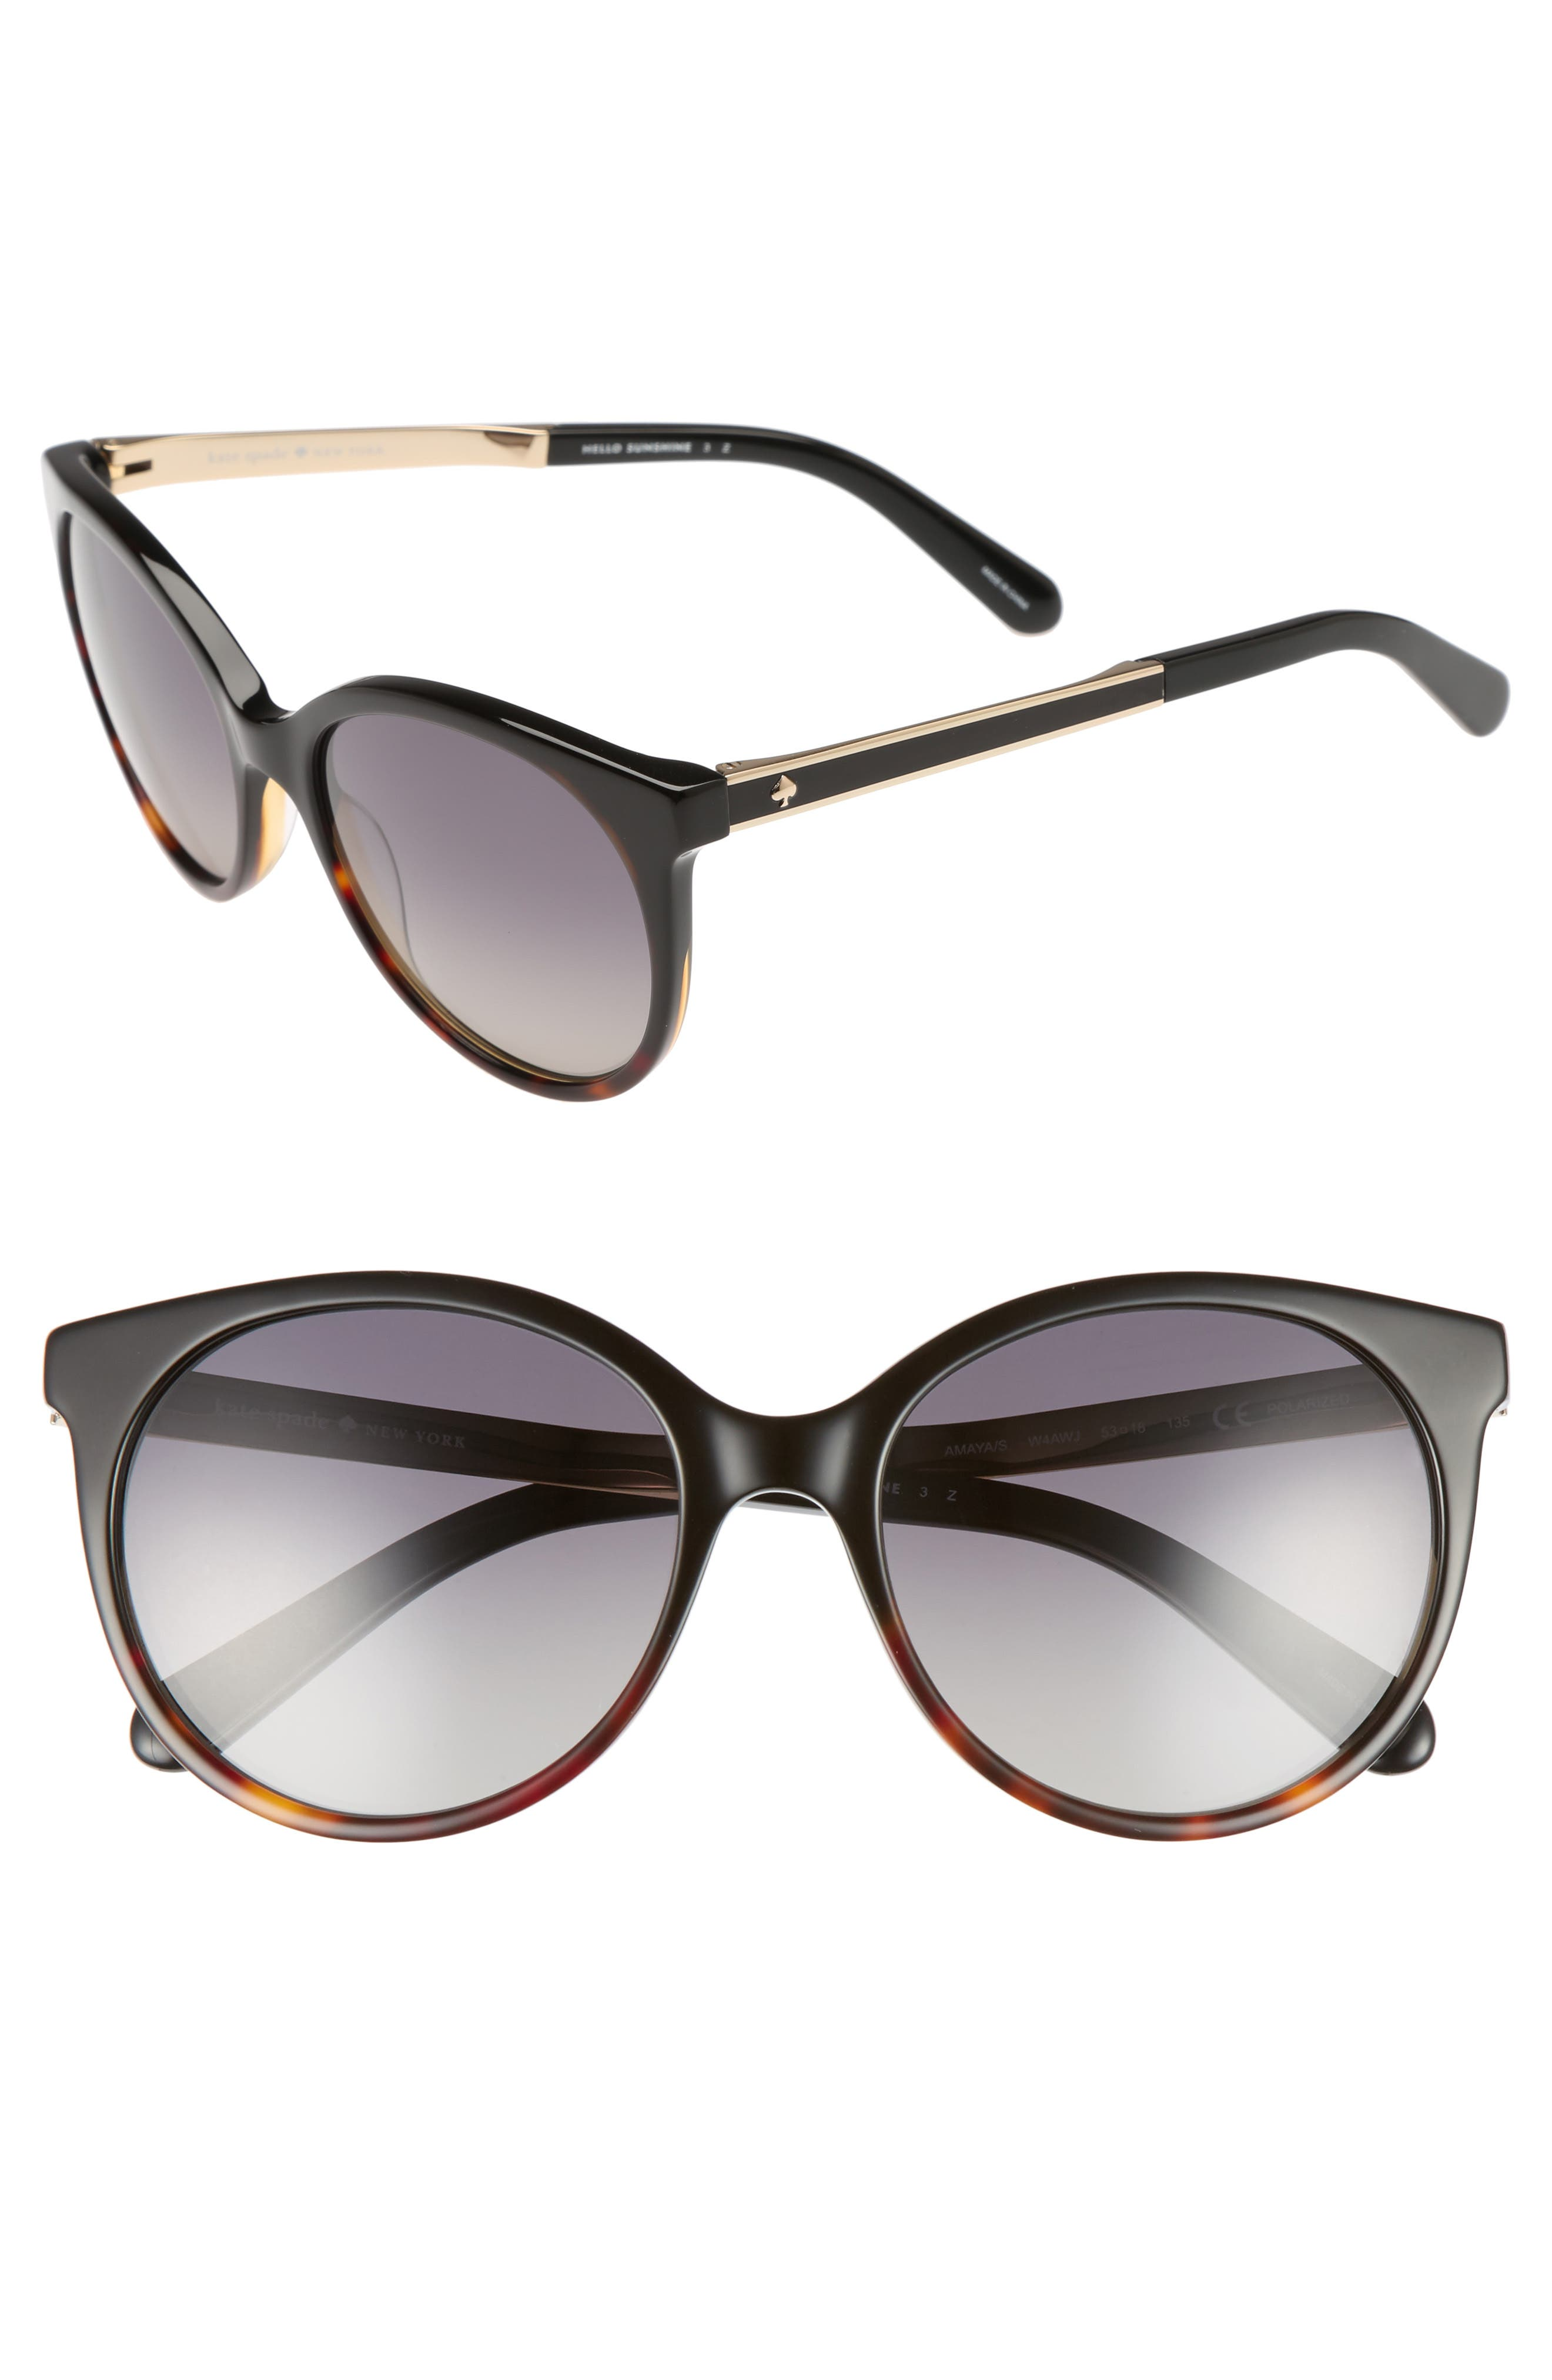 Main Image - kate spade new york 'amayas' 53mm cat eye sunglasses